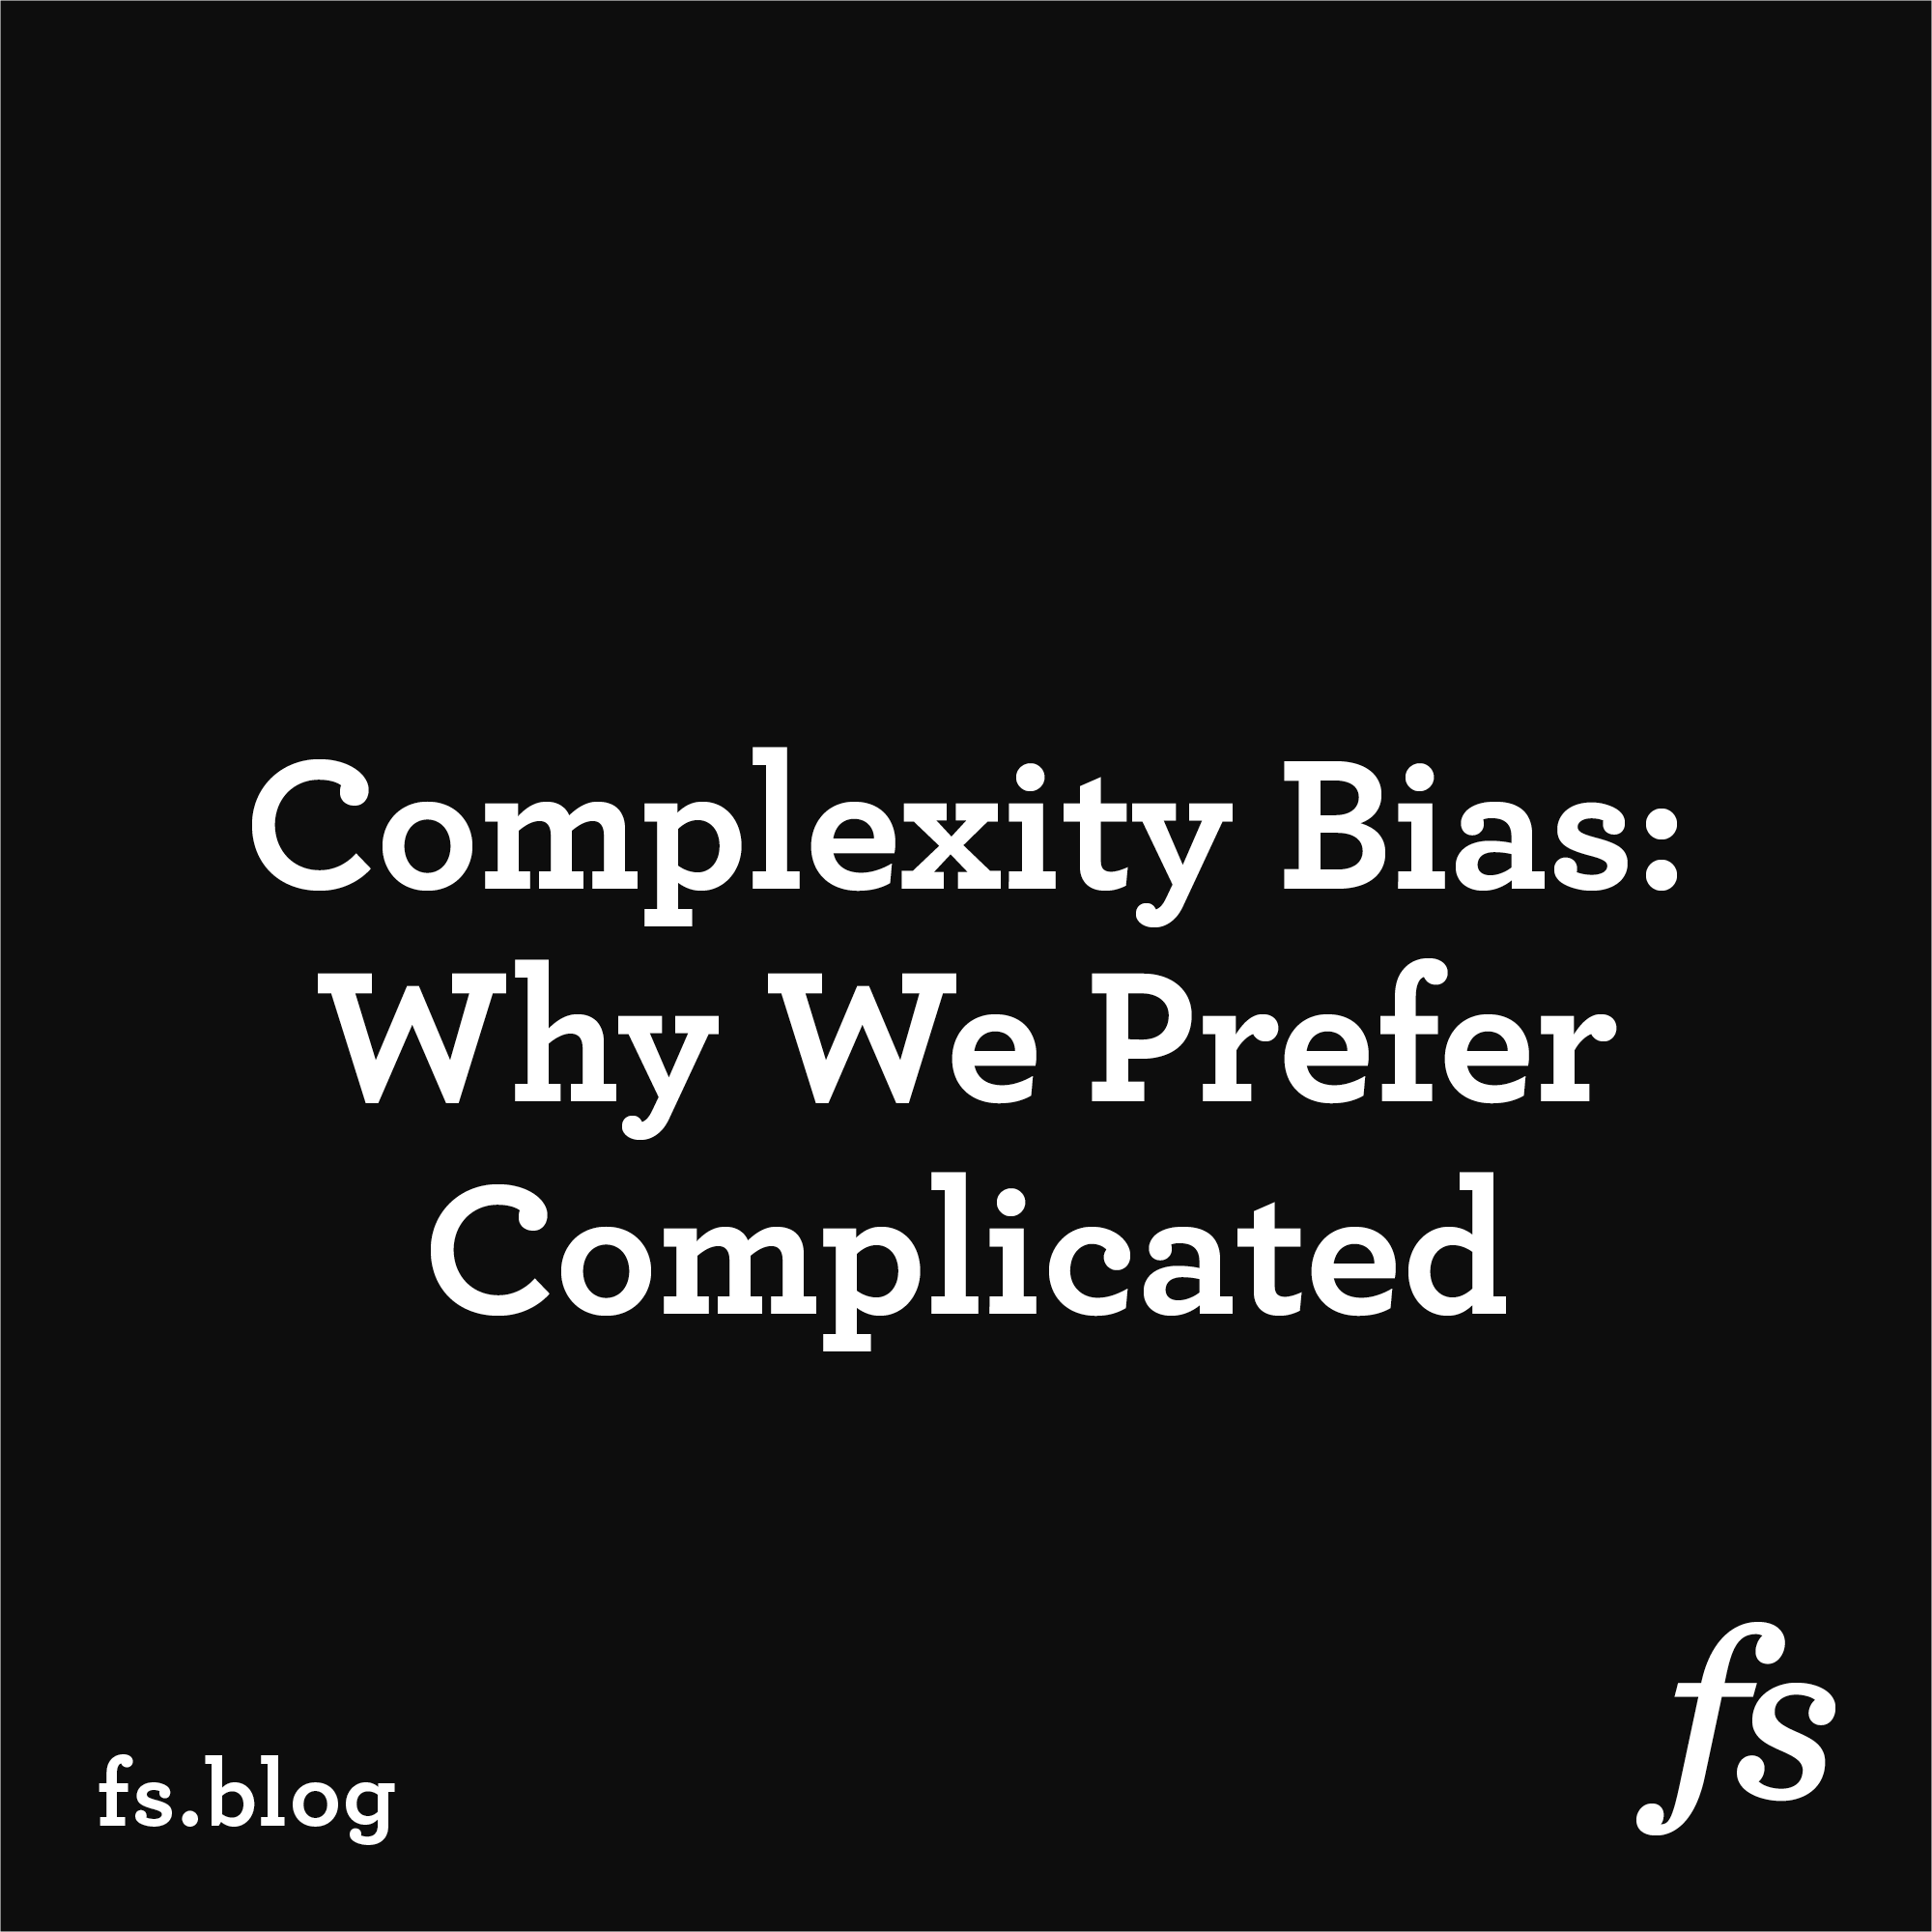 Faced with two competing hypotheses, we are likely to choose the most complex one. That's usually the option with the most assumptions and regressio